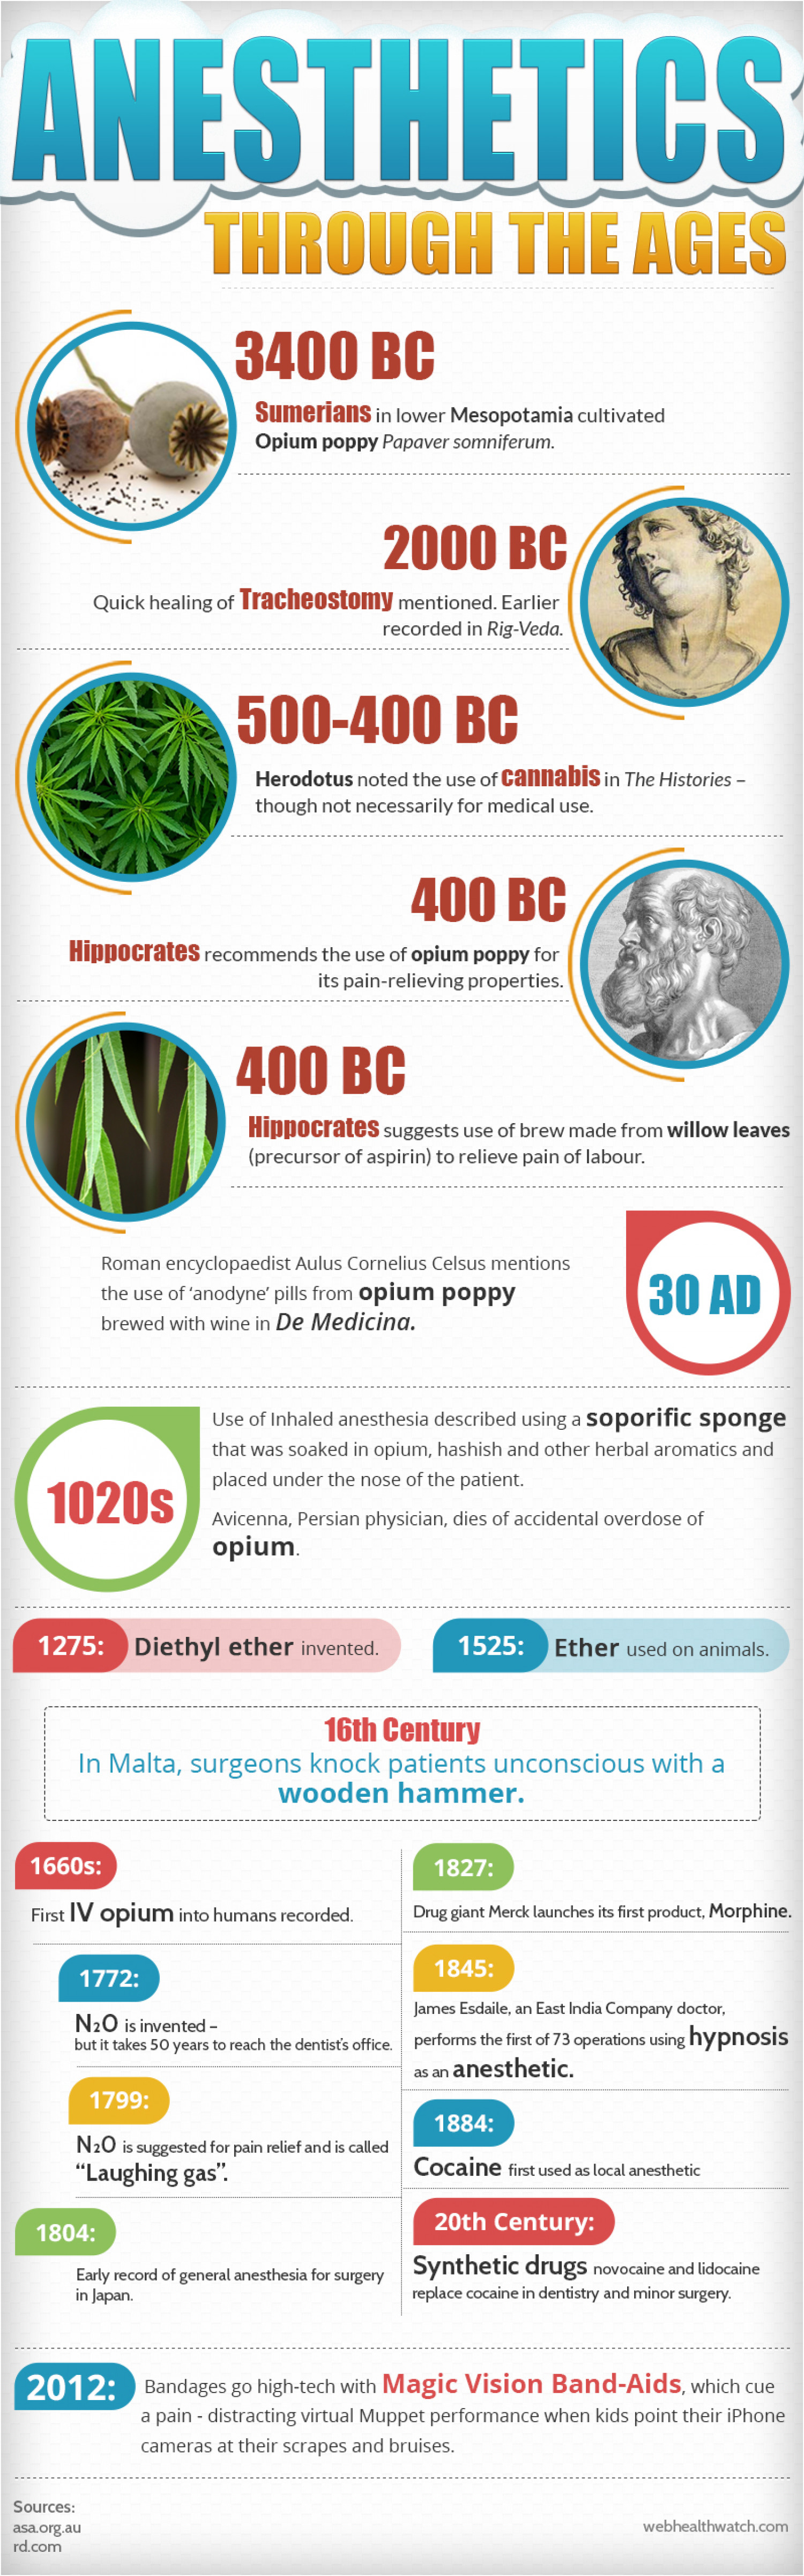 Anesthetics Through the Ages Infographic